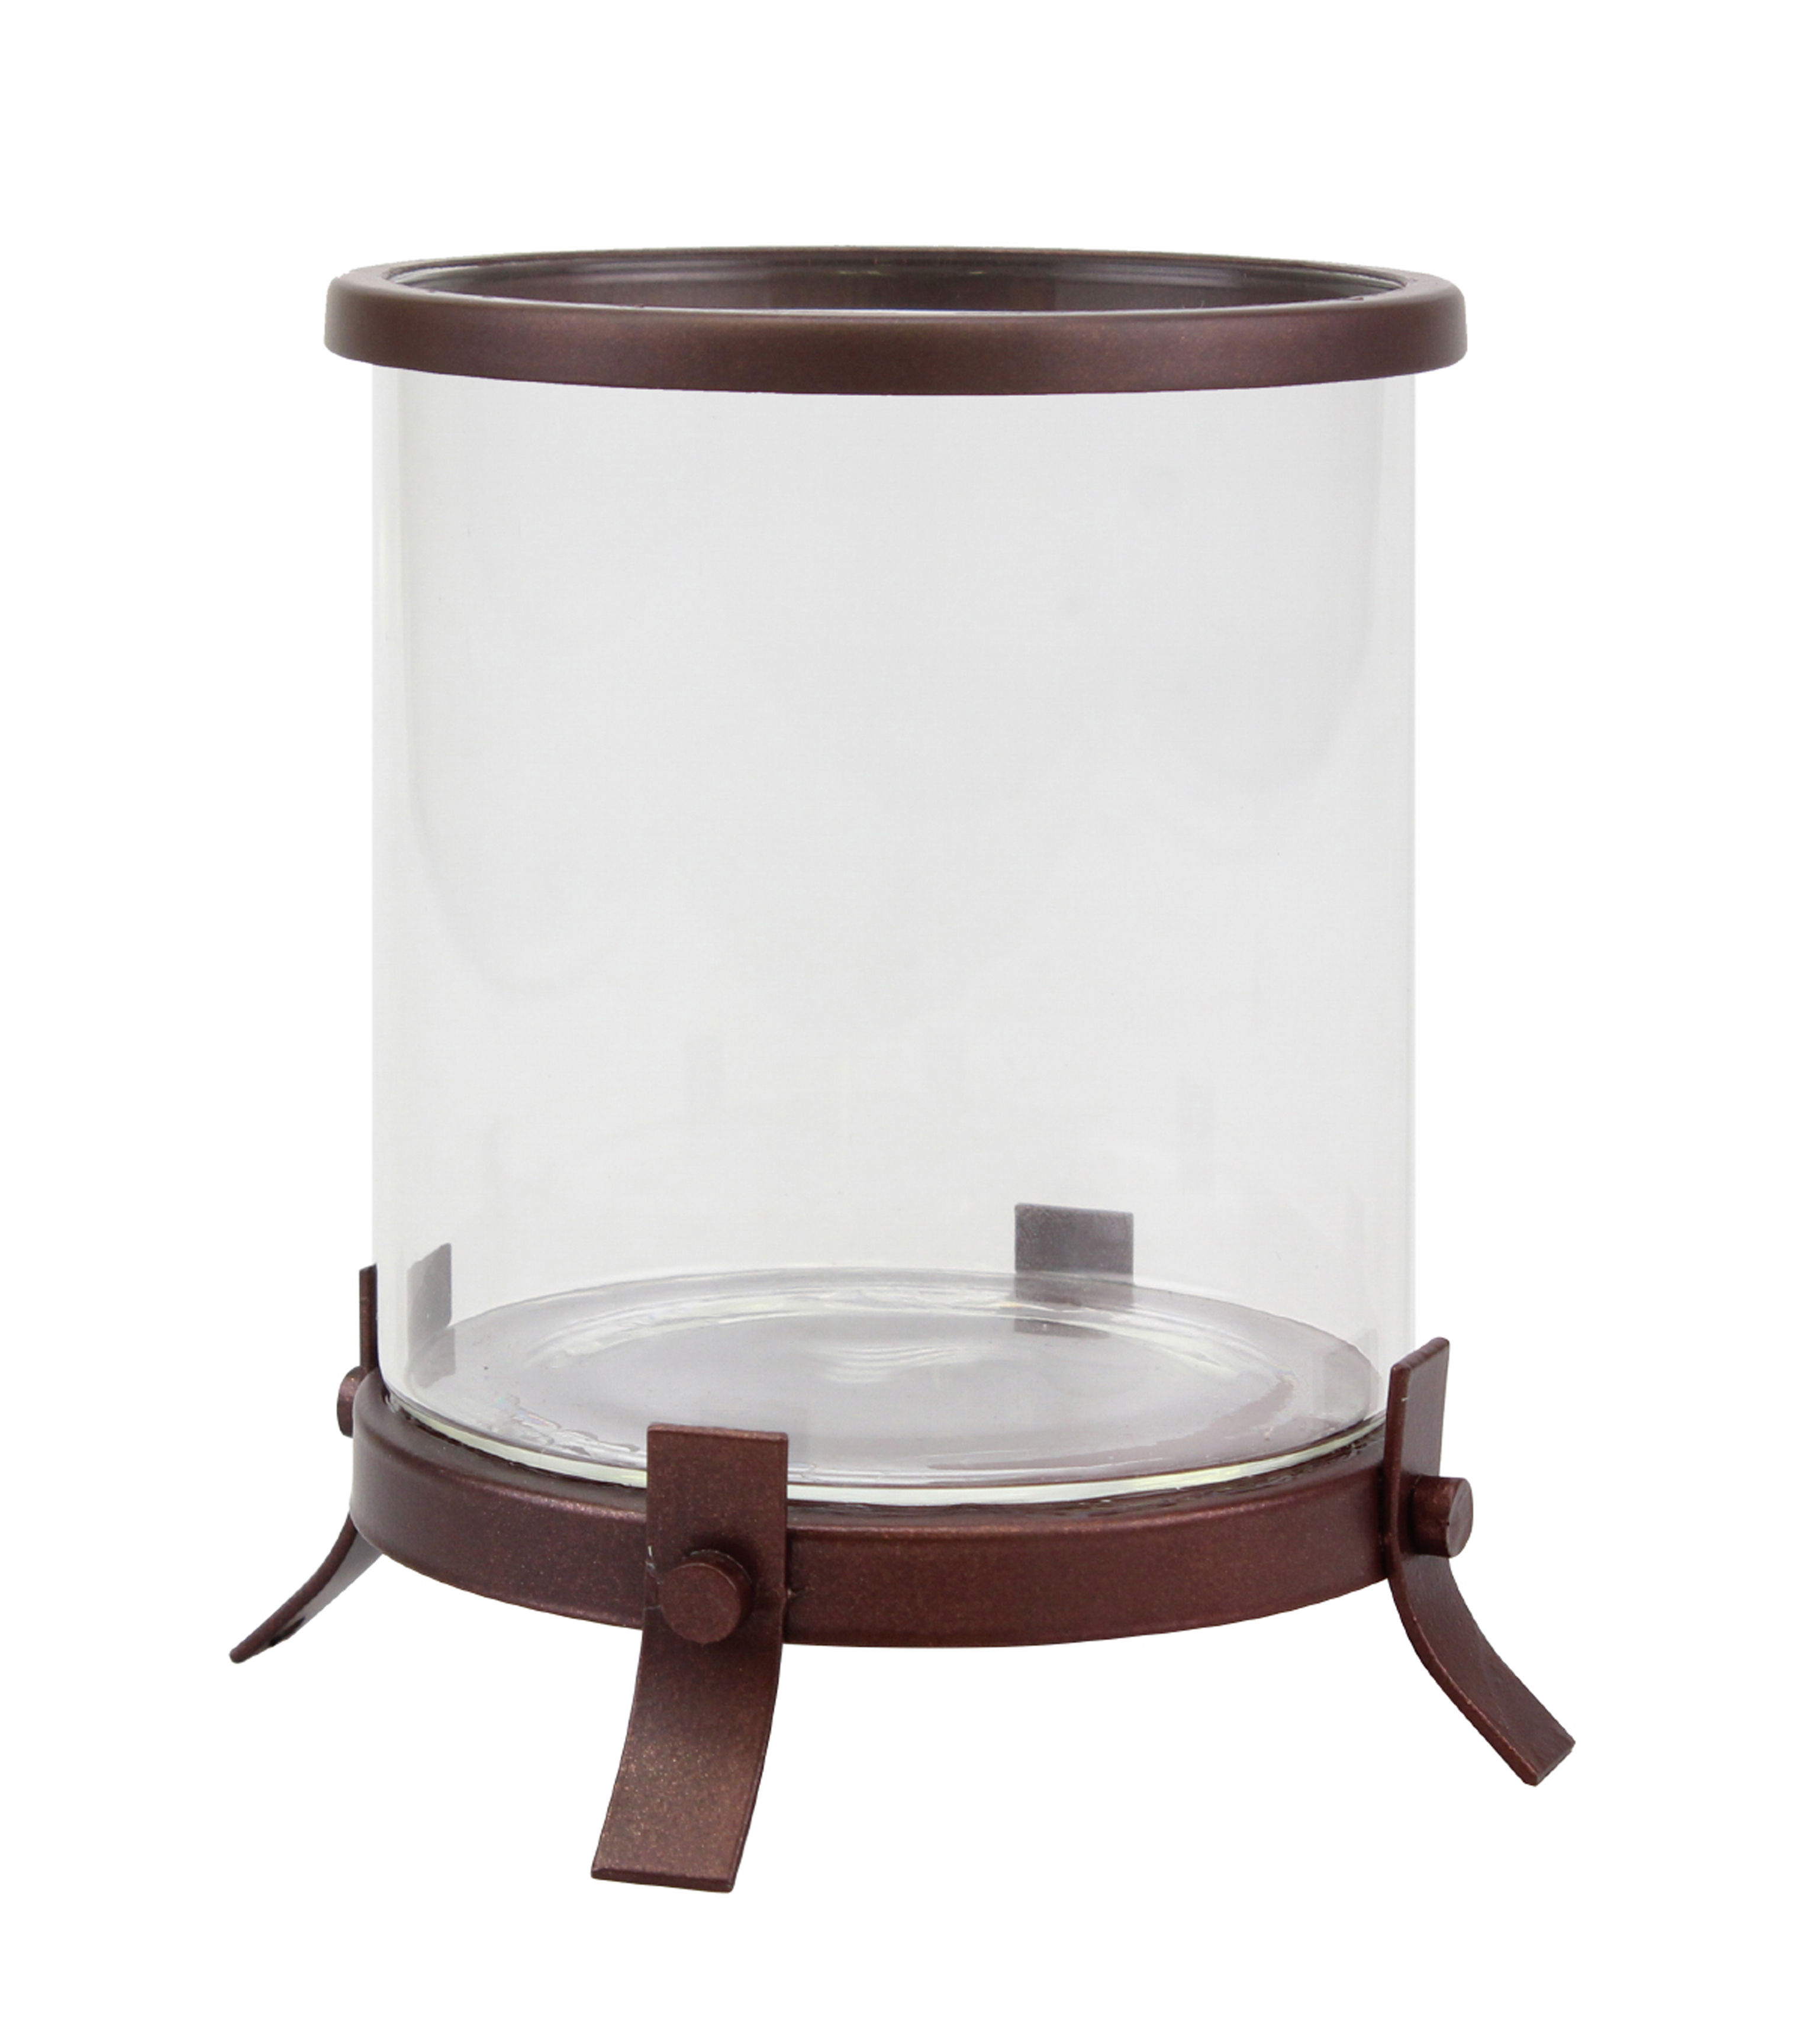 Hudson 43 Small Hurricane Candleholder with Feet